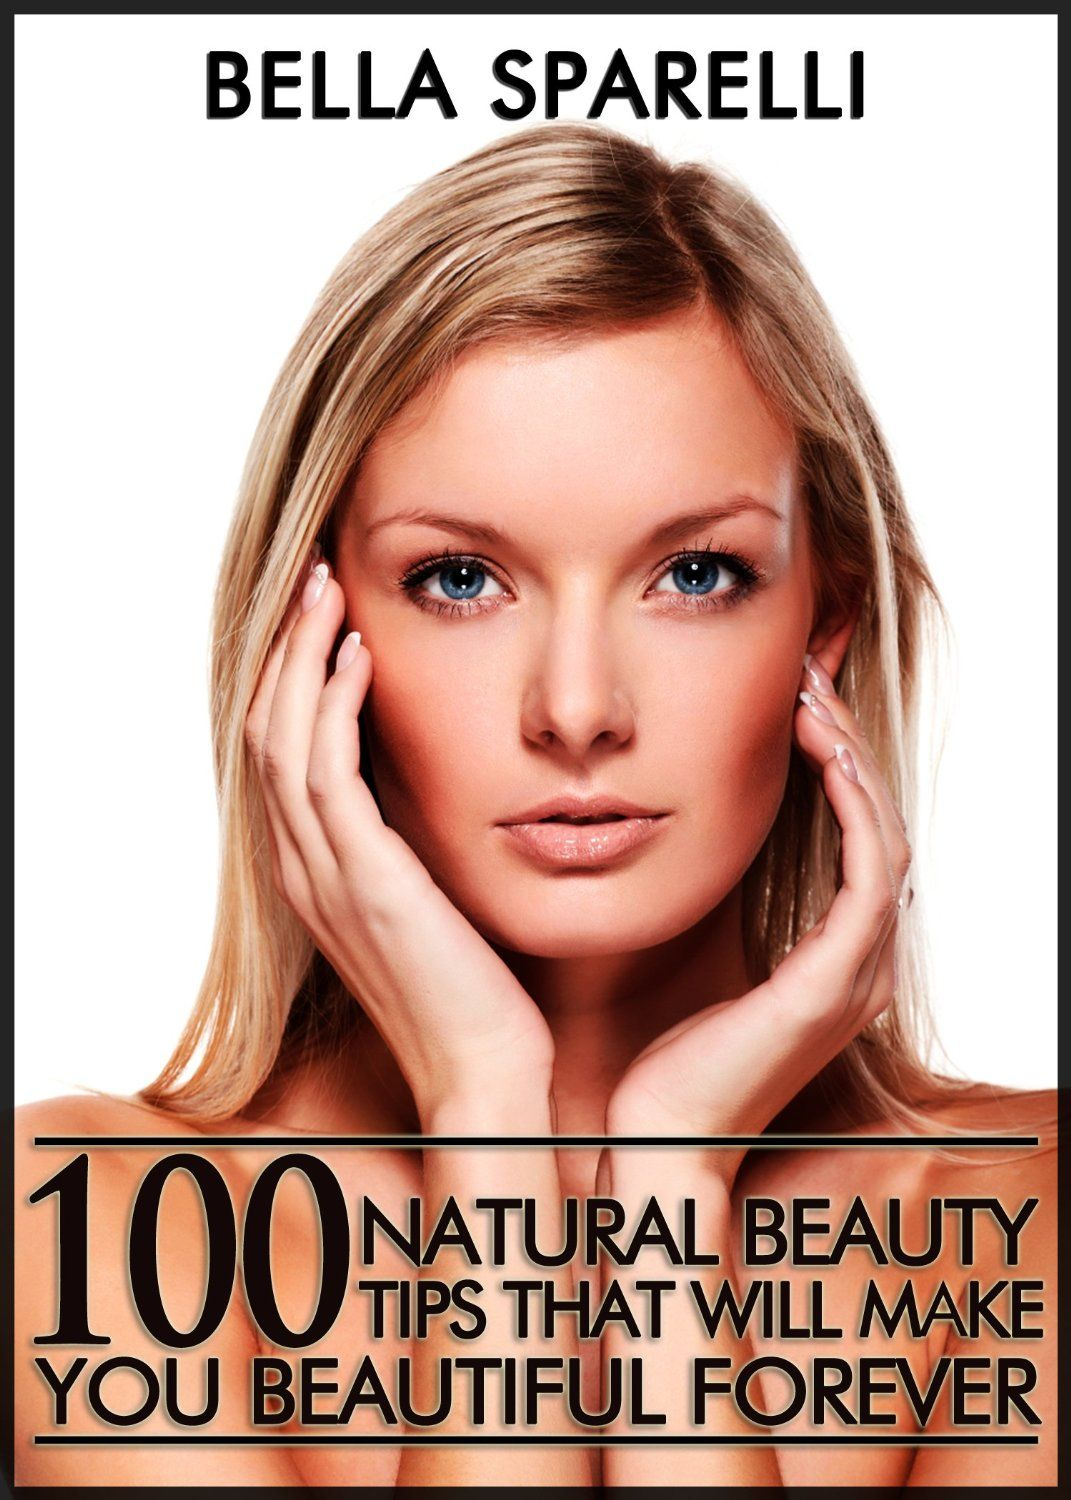 100 Natural Beauty Tips That Will Make You Beautiful Forever by Bella  Sparelli ($3.16)